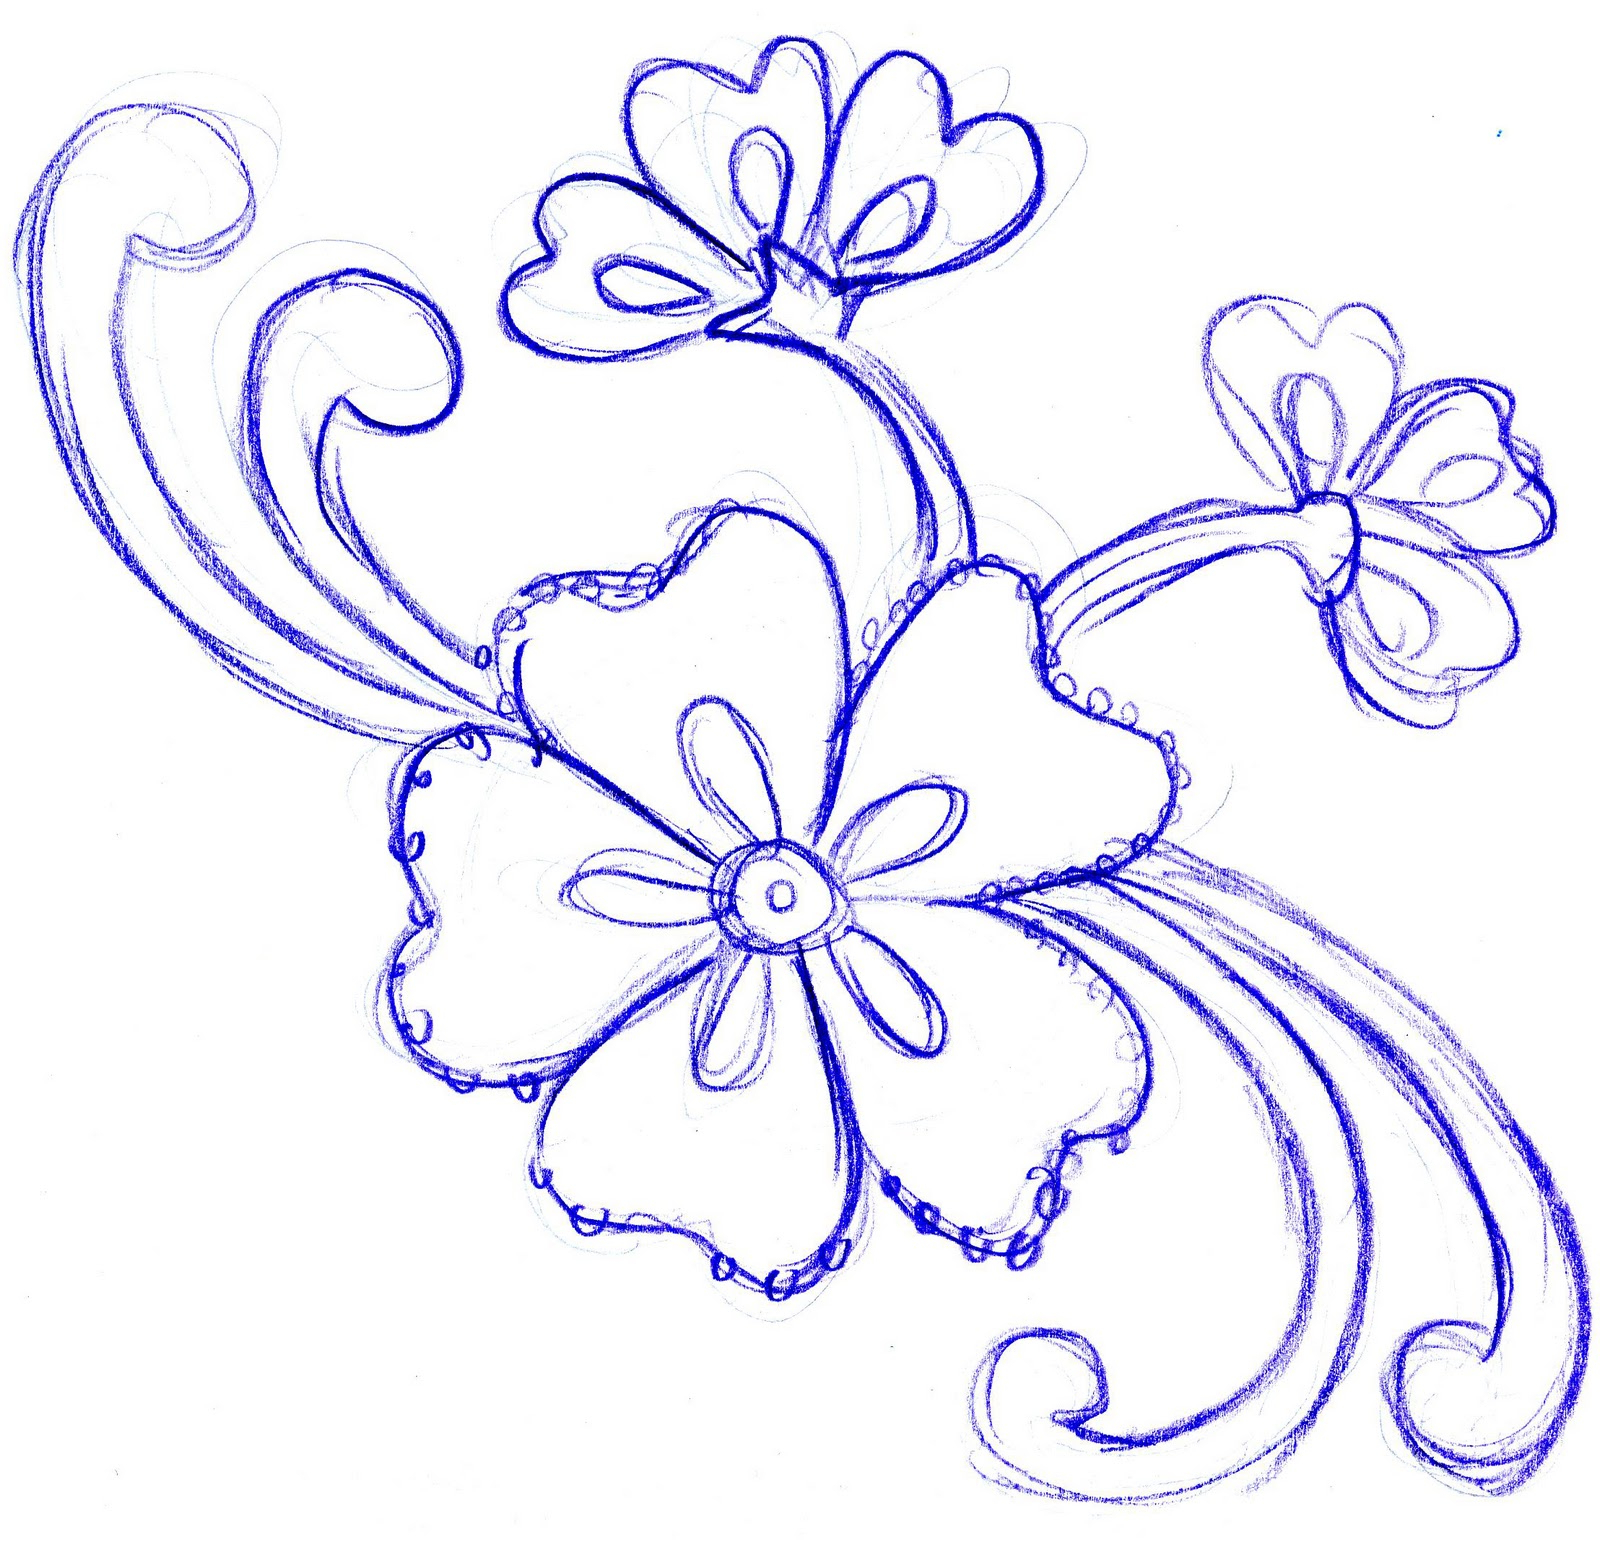 1600x1542 Design Flowers Pencil Drawing Art Simple Flower Sketch Free